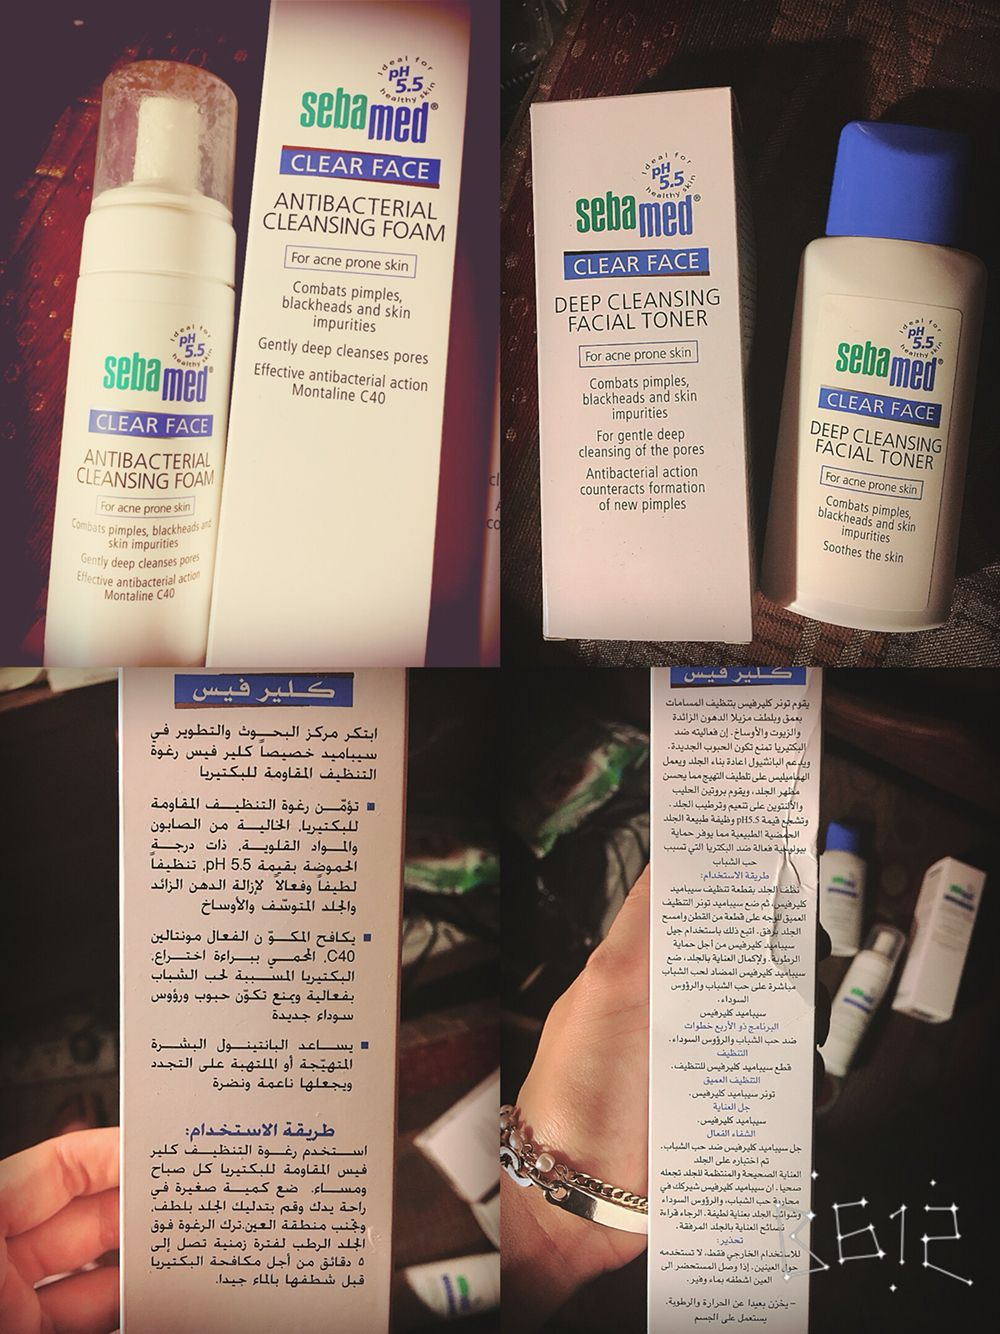 By Sebamed Made In Germany Clear Face Cleansing Foam Price 15iqd Clear Face Toner Price 20iqd From ابتسامة بغداد